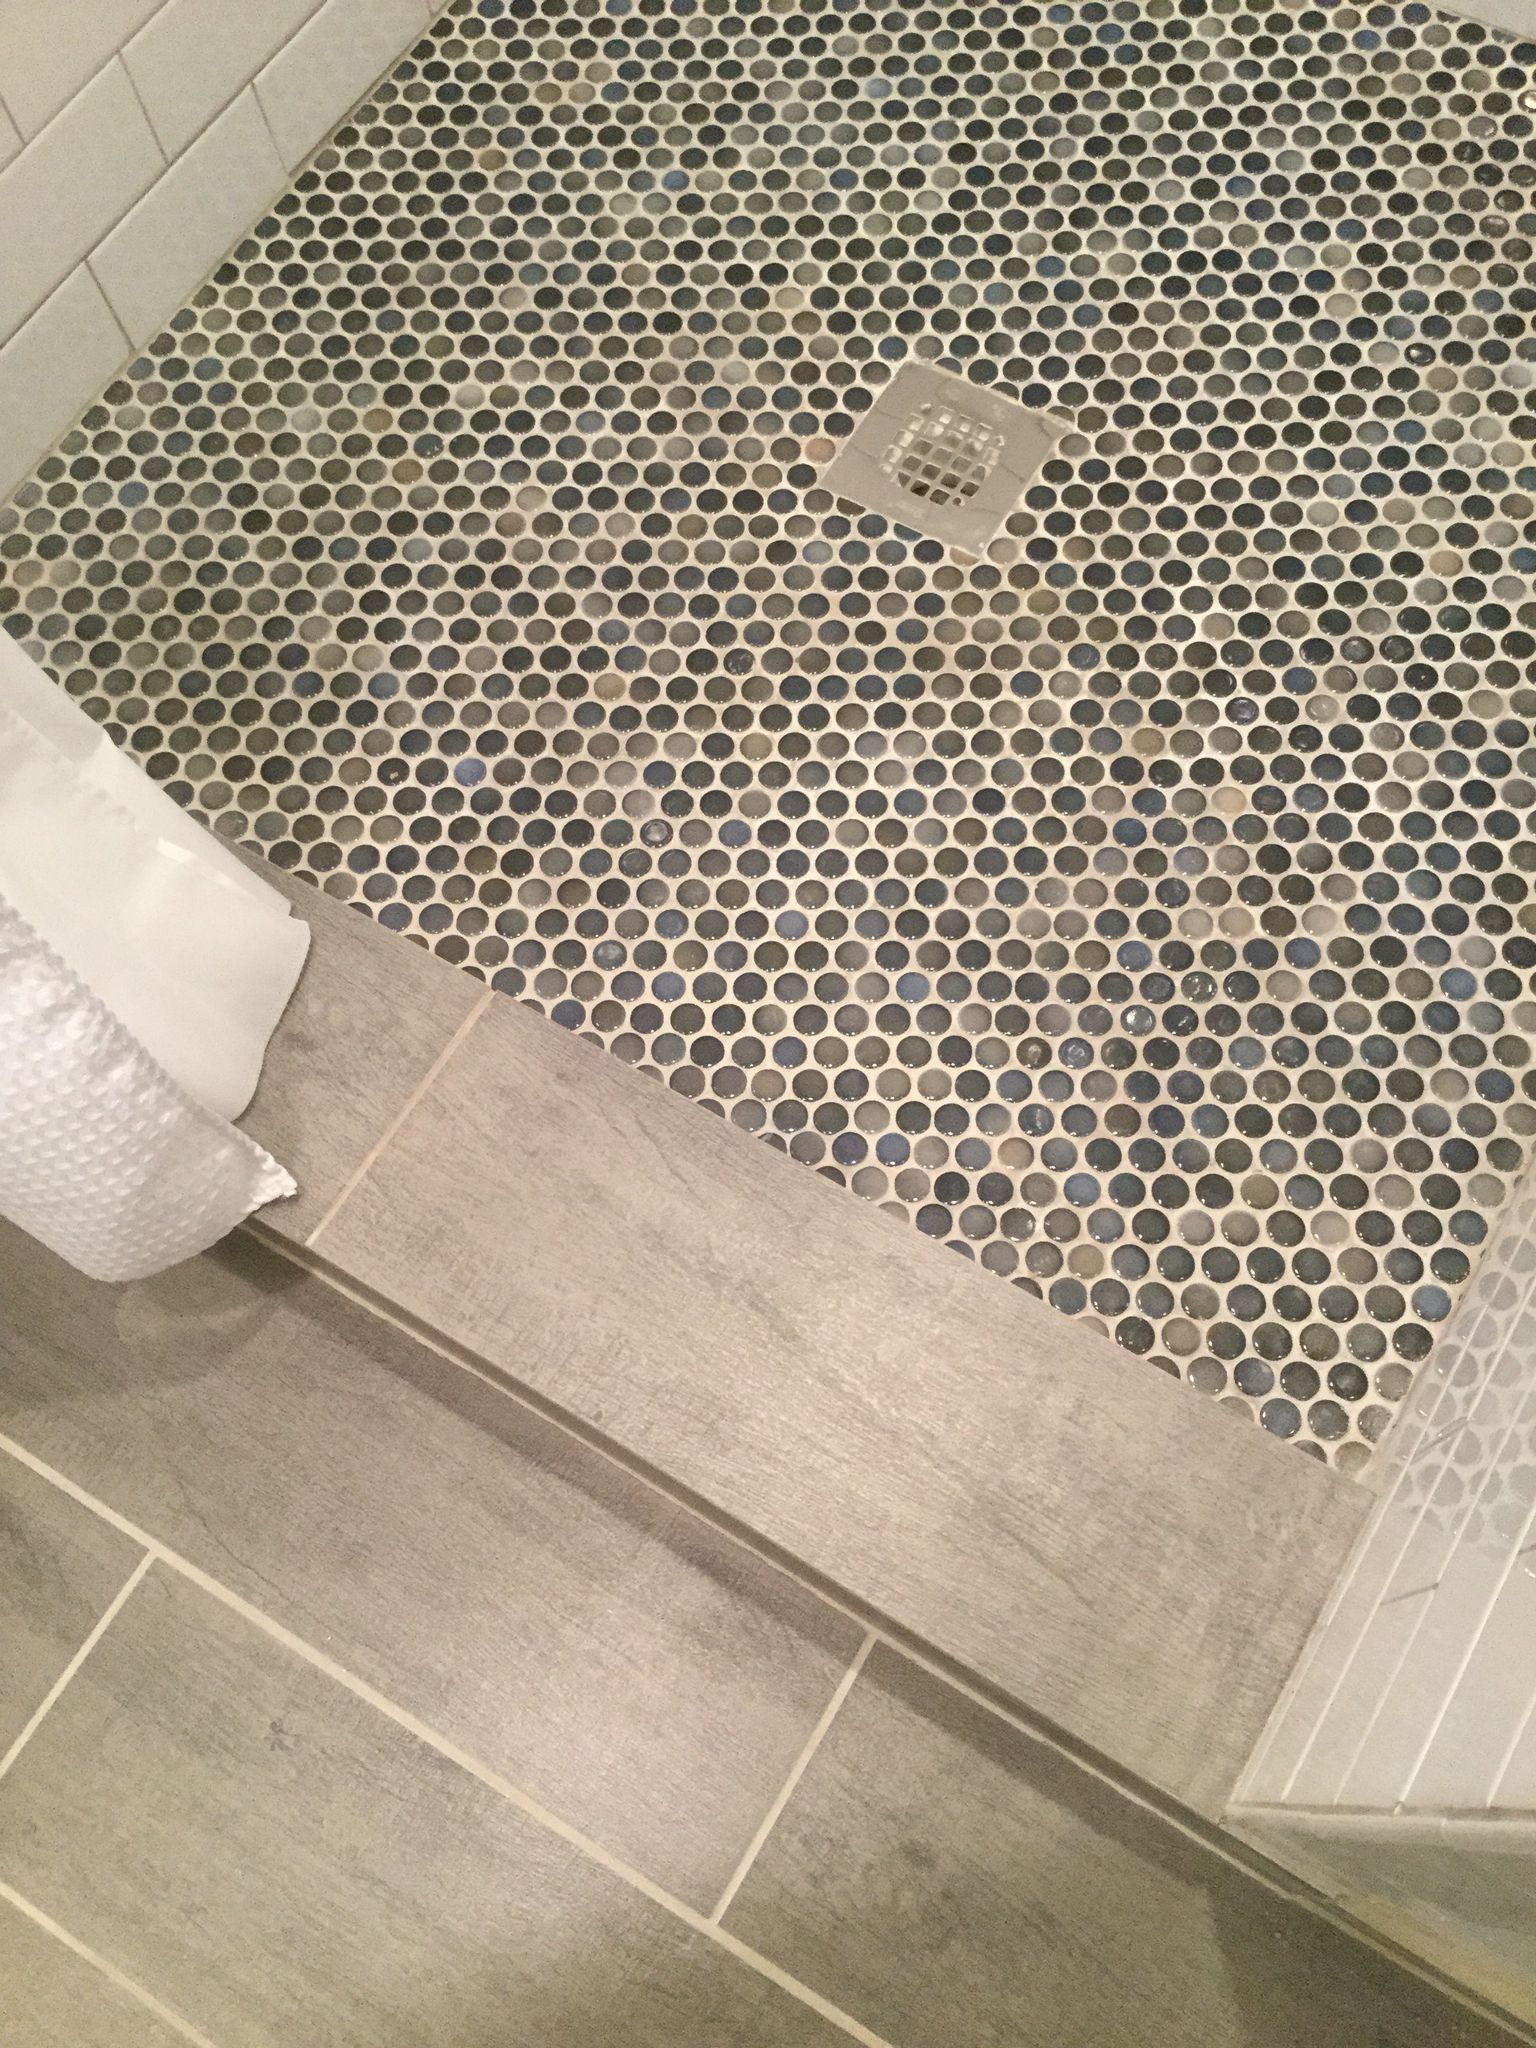 Blue and gray penny tile on shower floor.